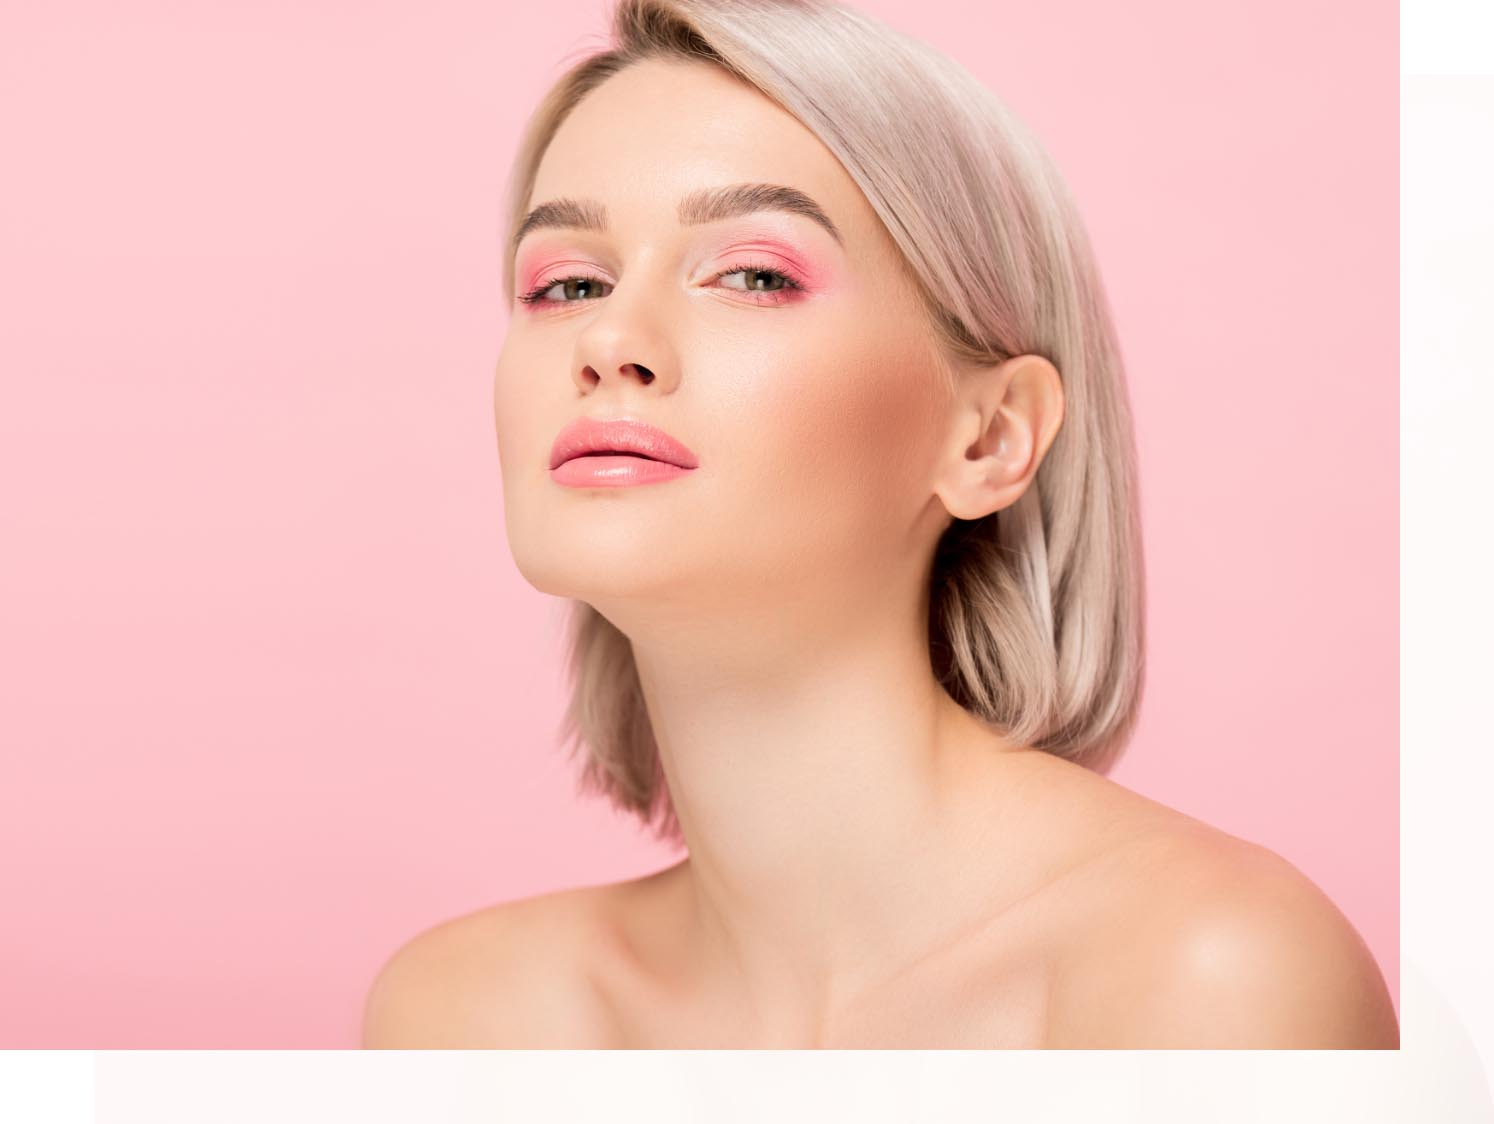 Lip Fillers Cosmetic Treatments Woman